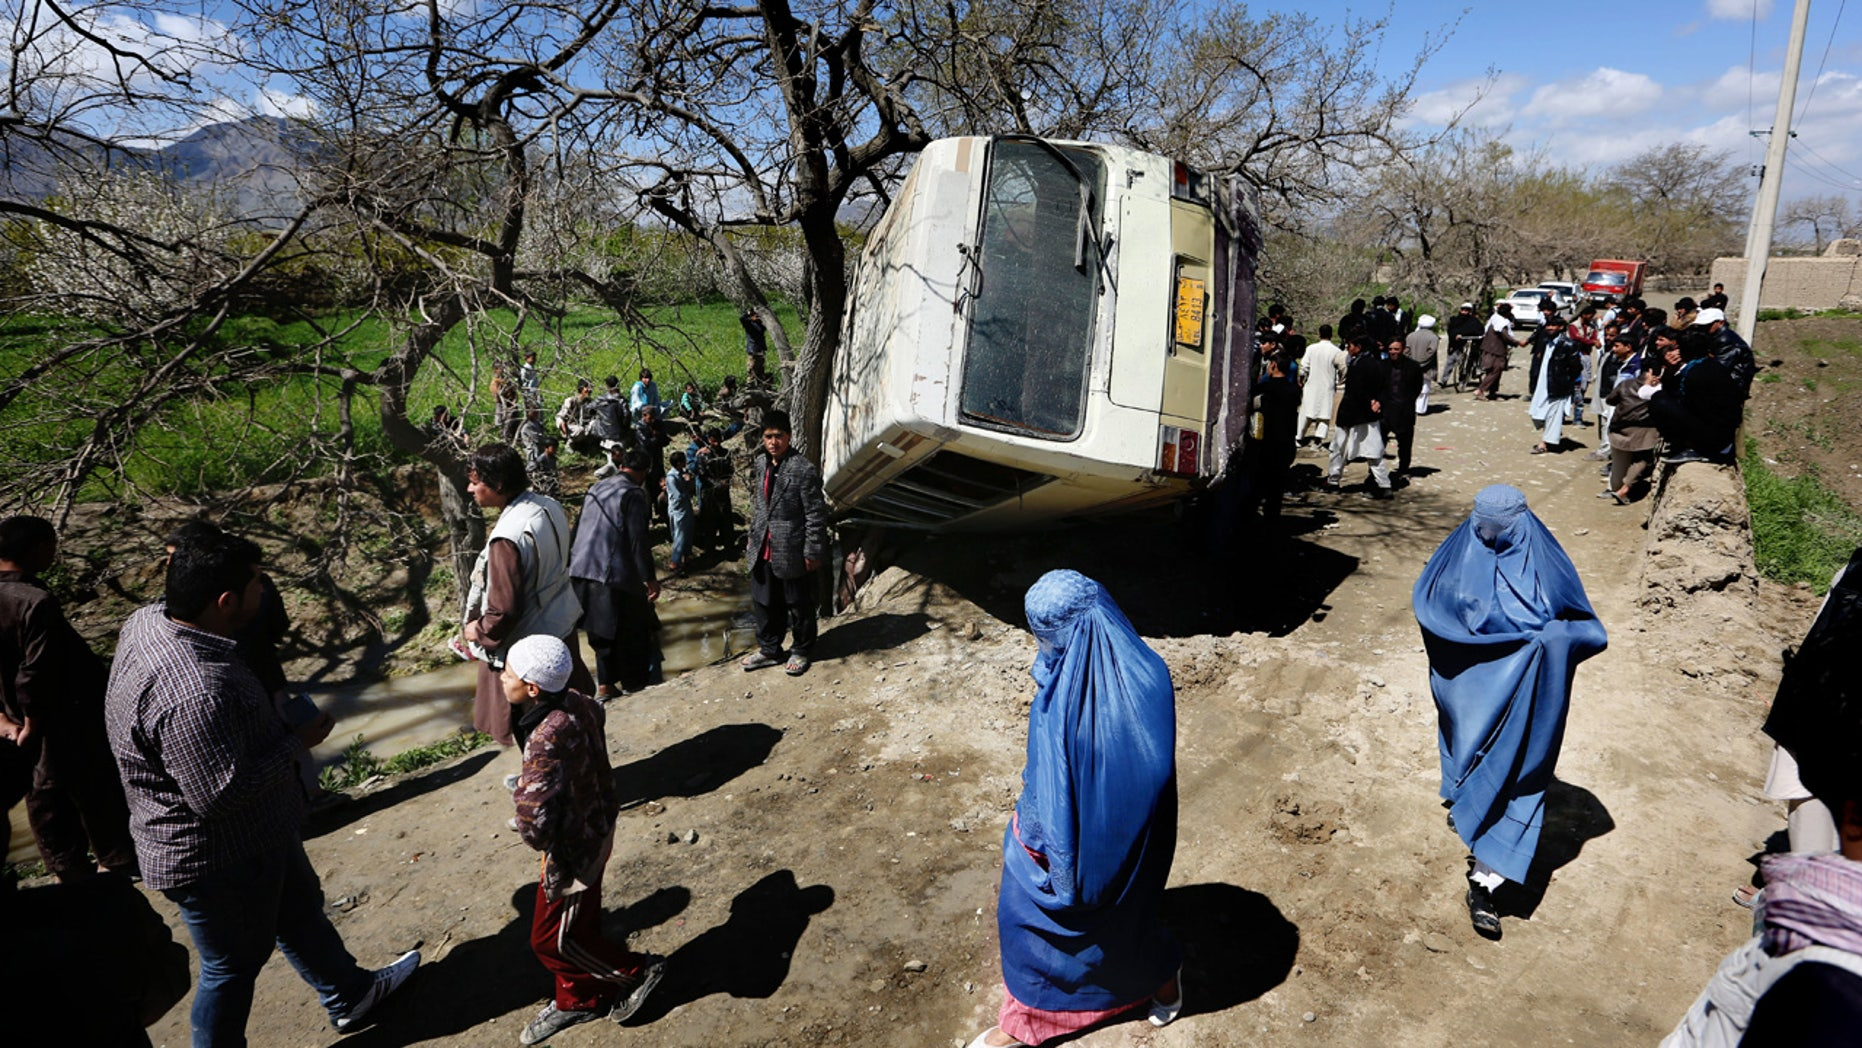 April 11, 2016: Afghan women walk past a damaged bus after a roadside bomb explosion on the outskirts of Kabul.